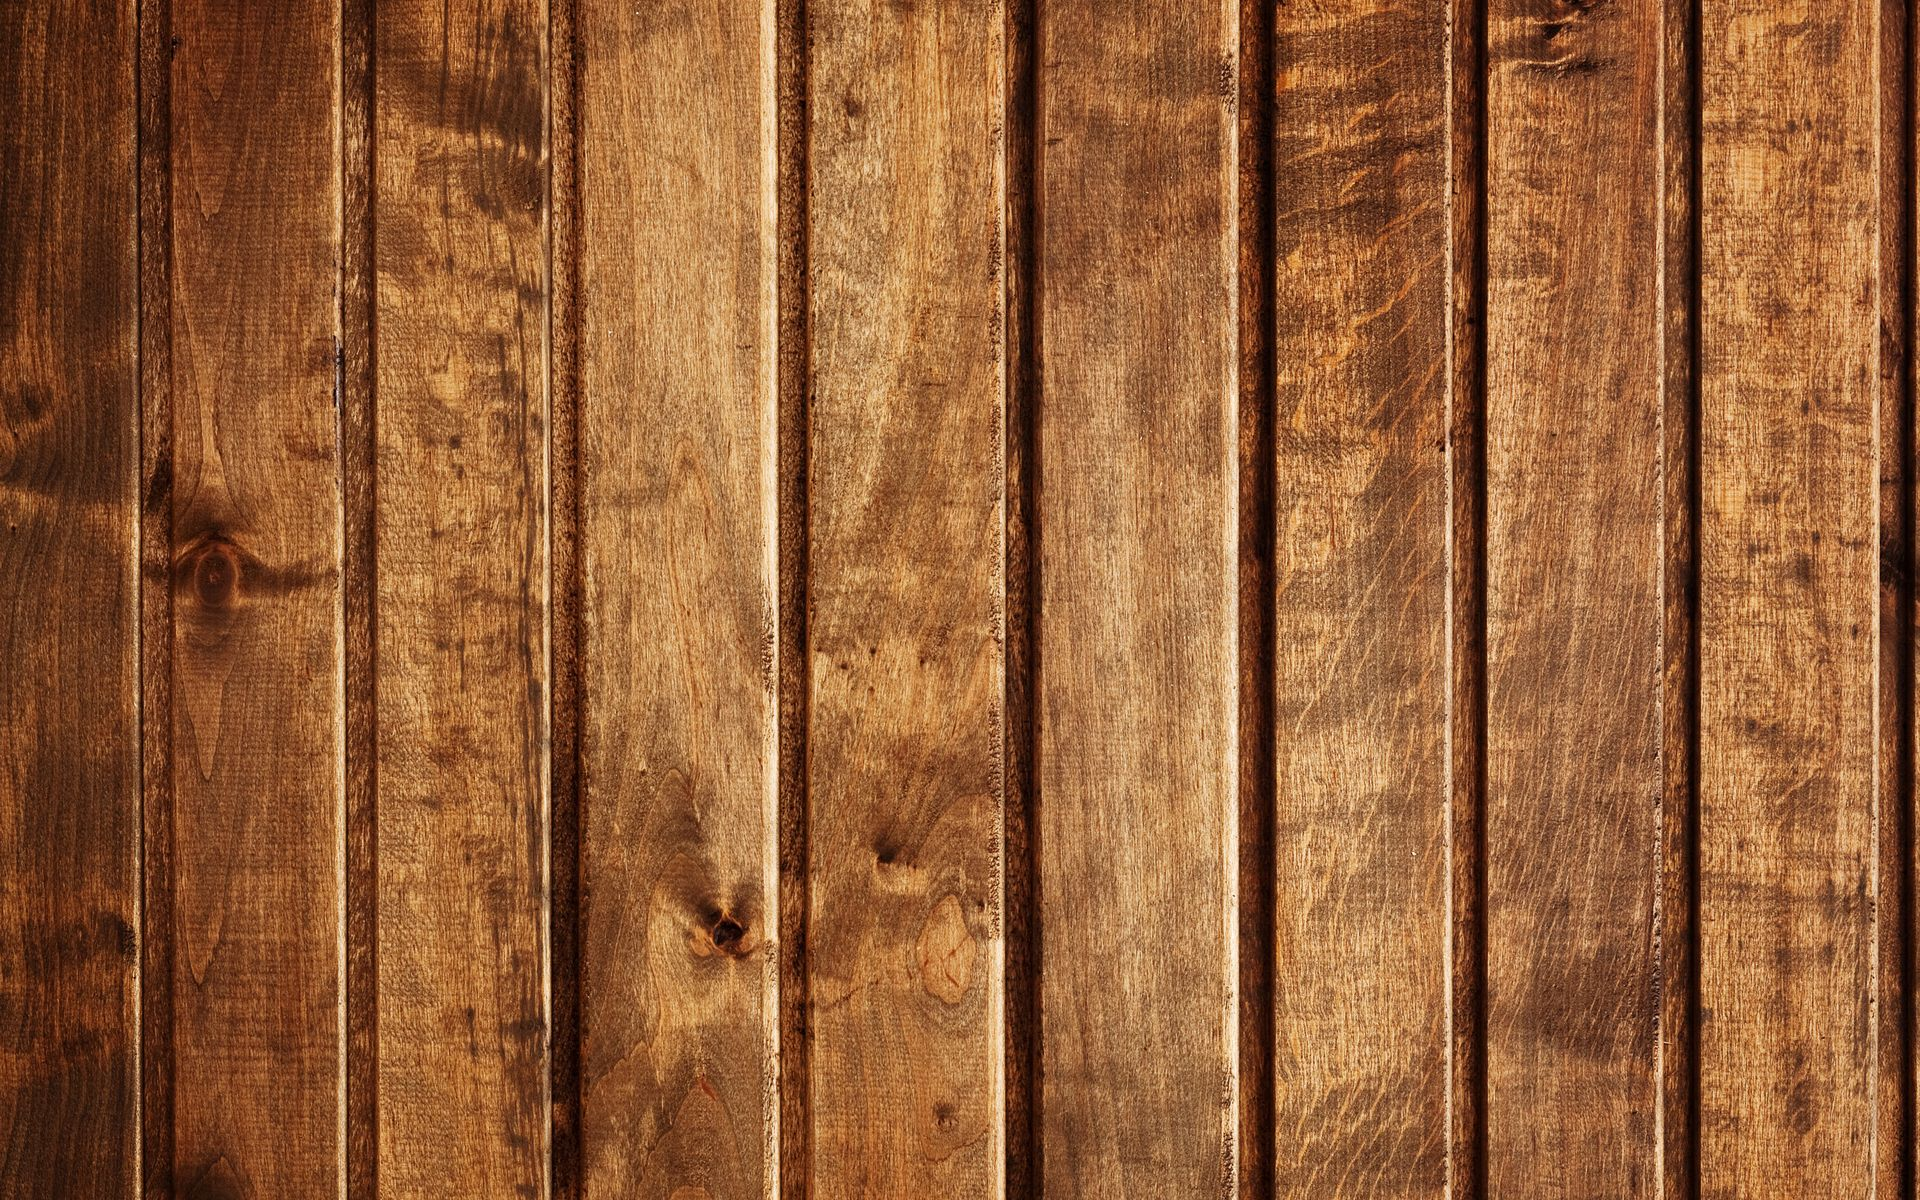 30 Amazing Free Wood Texture Backgrounds Tech L Web